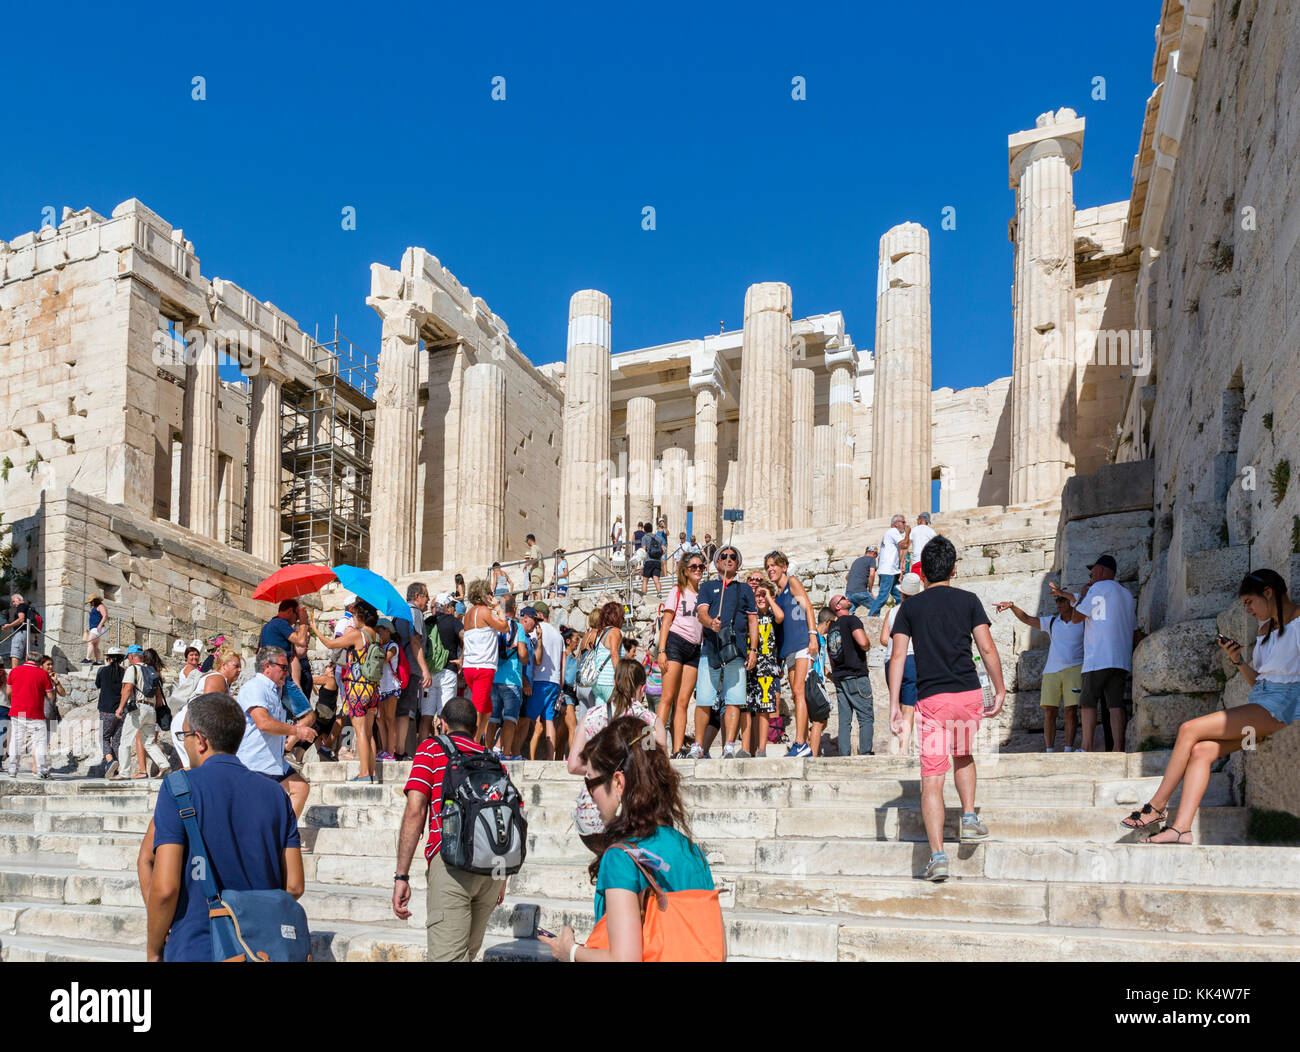 Crowds of tourists on the steps leading up to the Propylaea, Acropolis, Athens, Greece Stock Photo